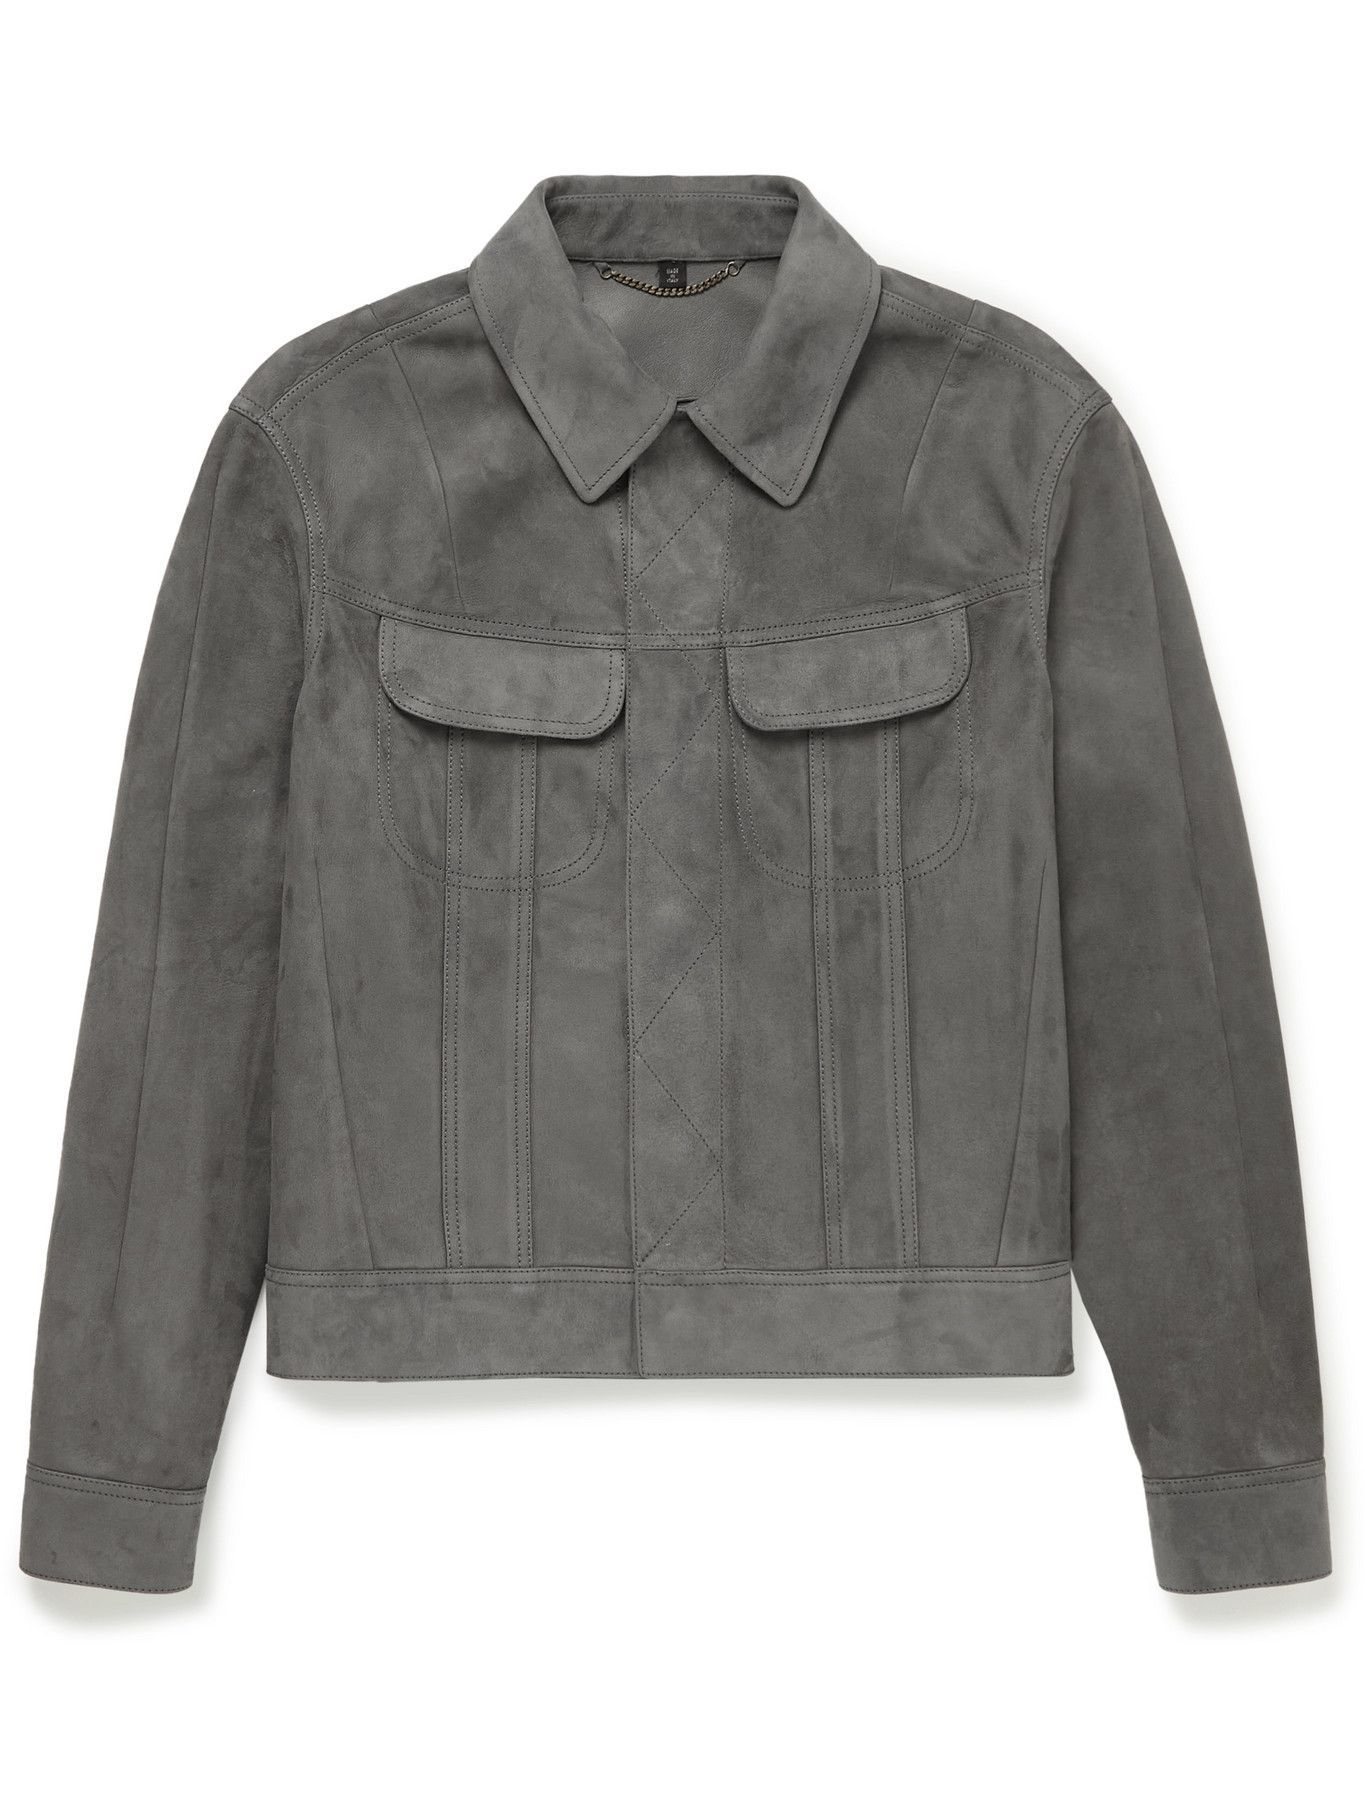 DUNHILL - Slim-Fit Suede Trucker Jacket - Gray